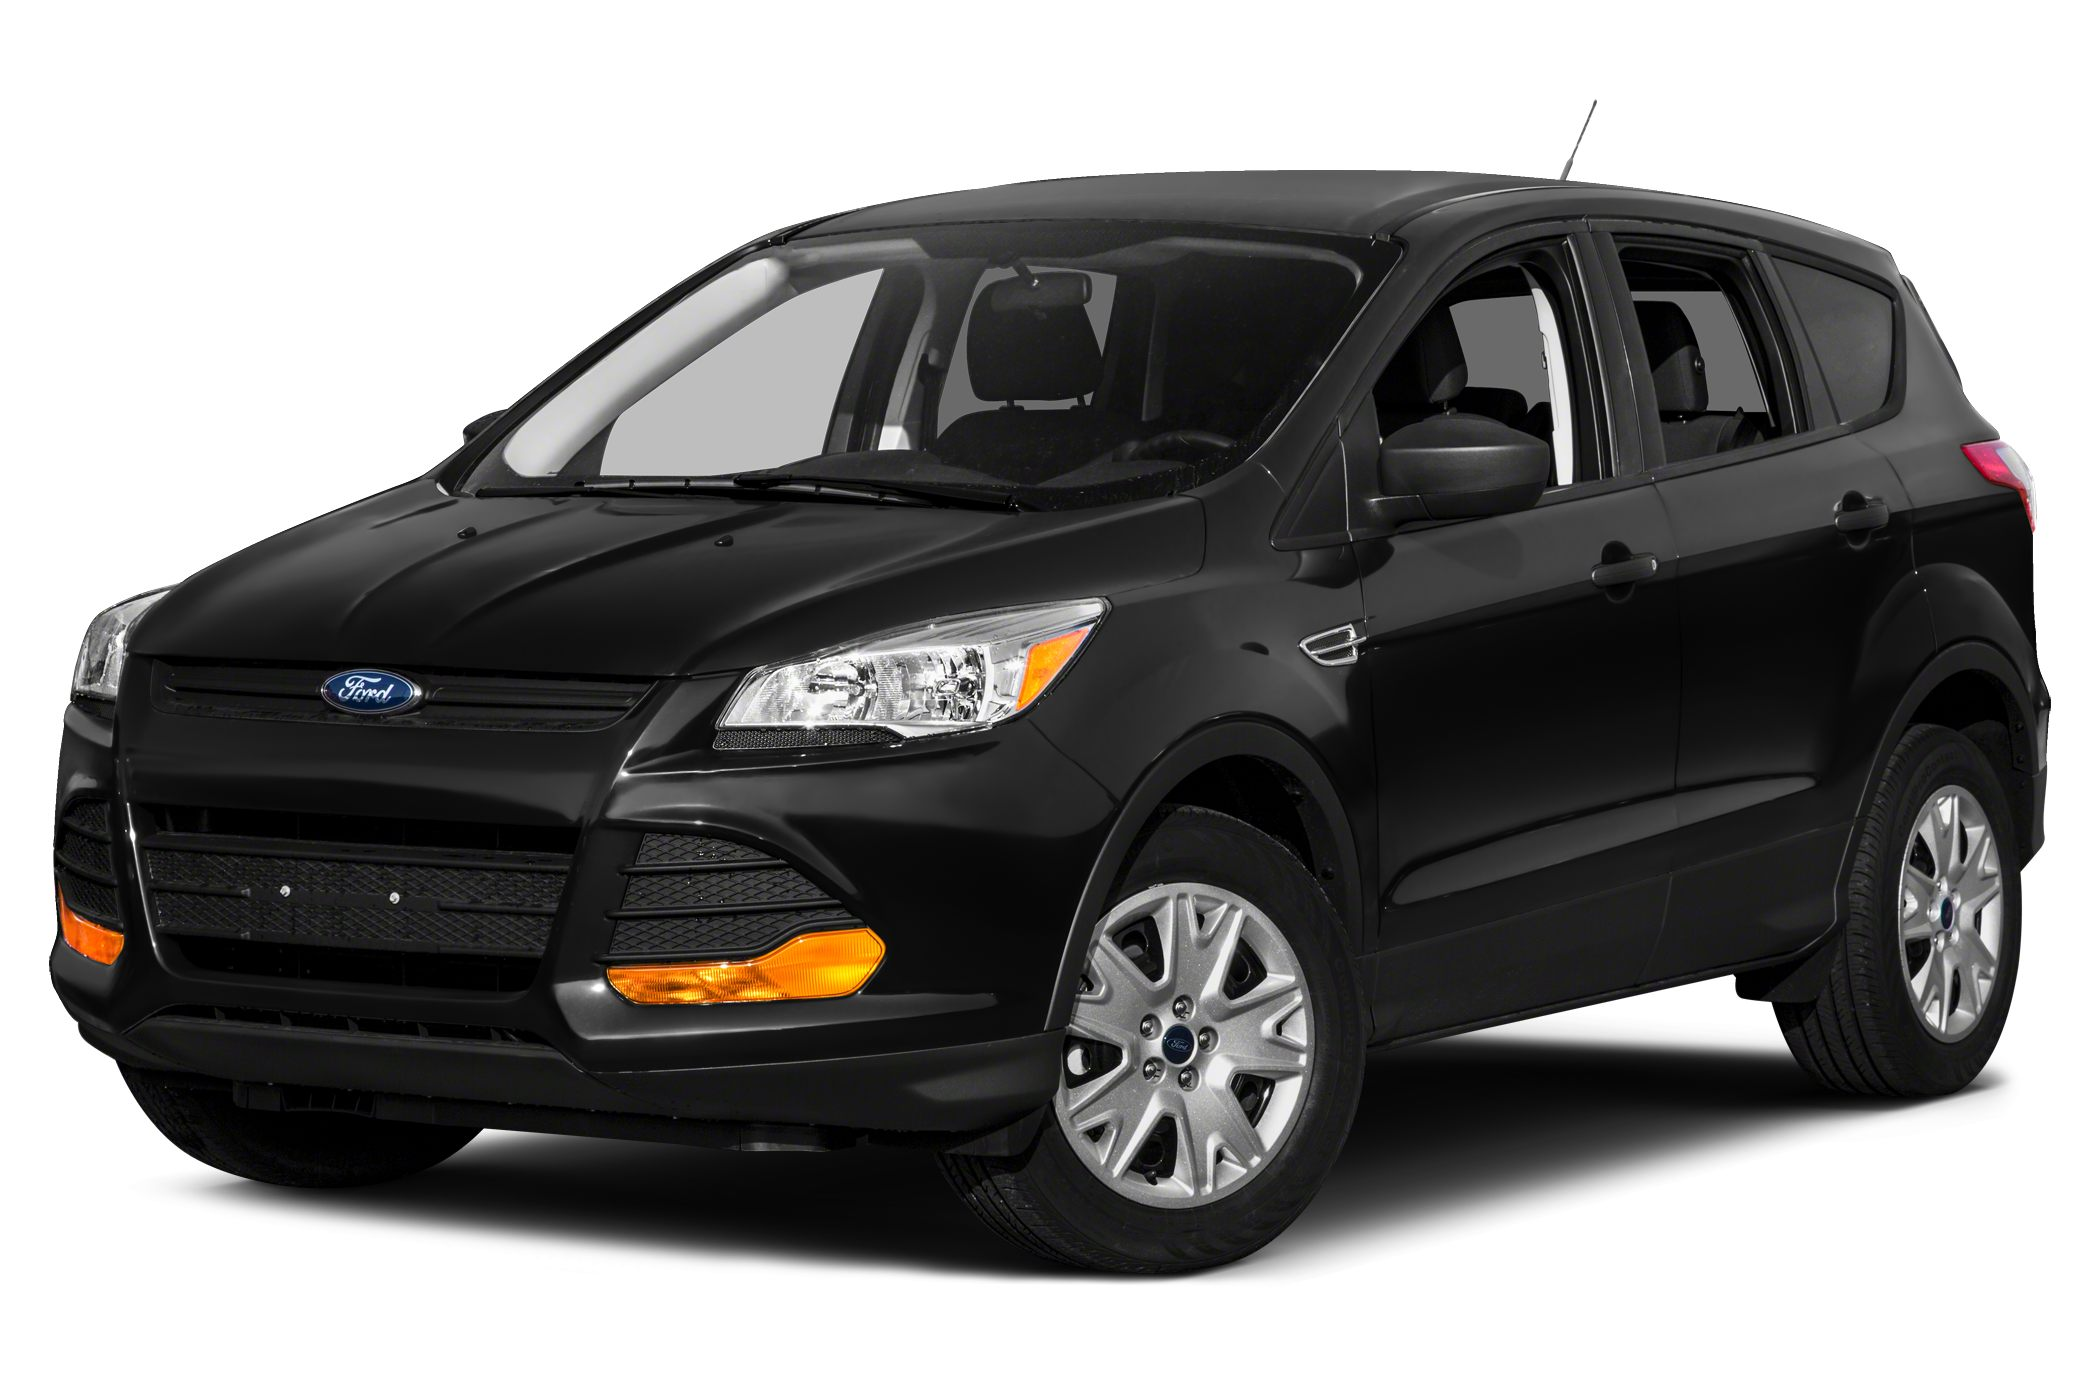 2013 Ford Escape SE SUV for sale in Santa Maria for $16,599 with 75,068 miles